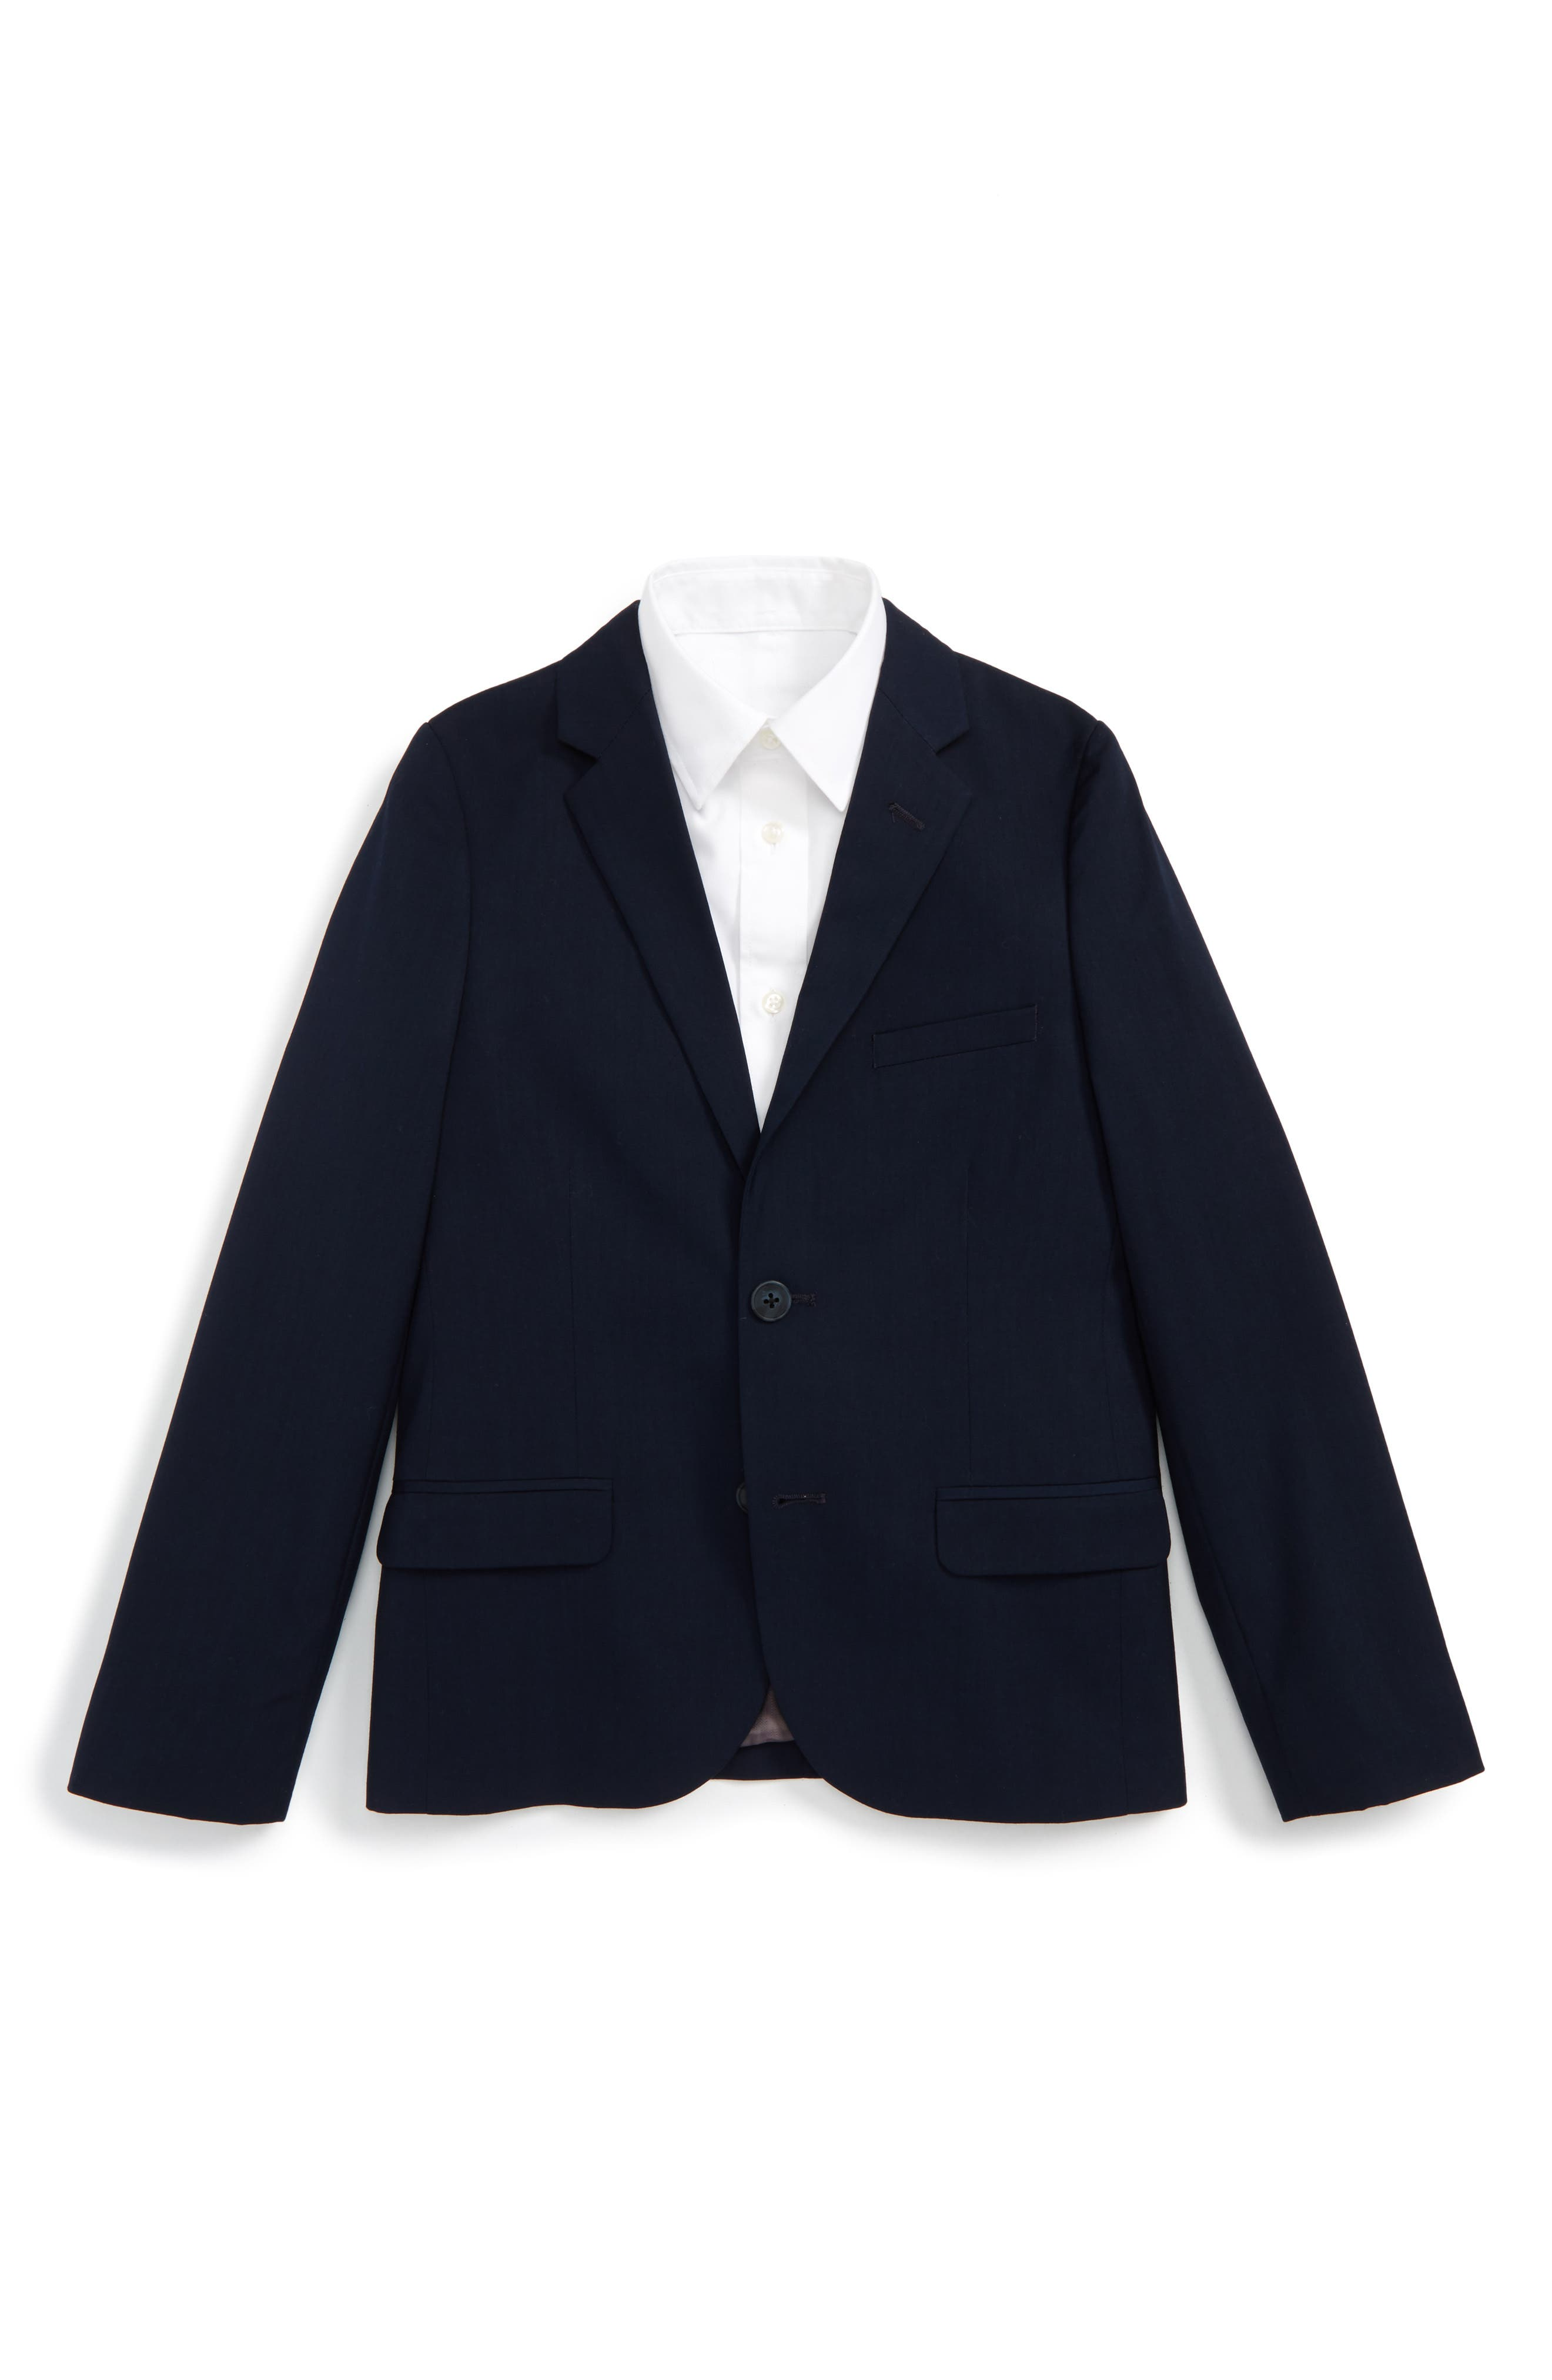 Nordstrom Elliott Blazer (Toddler Boys, Little Boys & Big Boys)